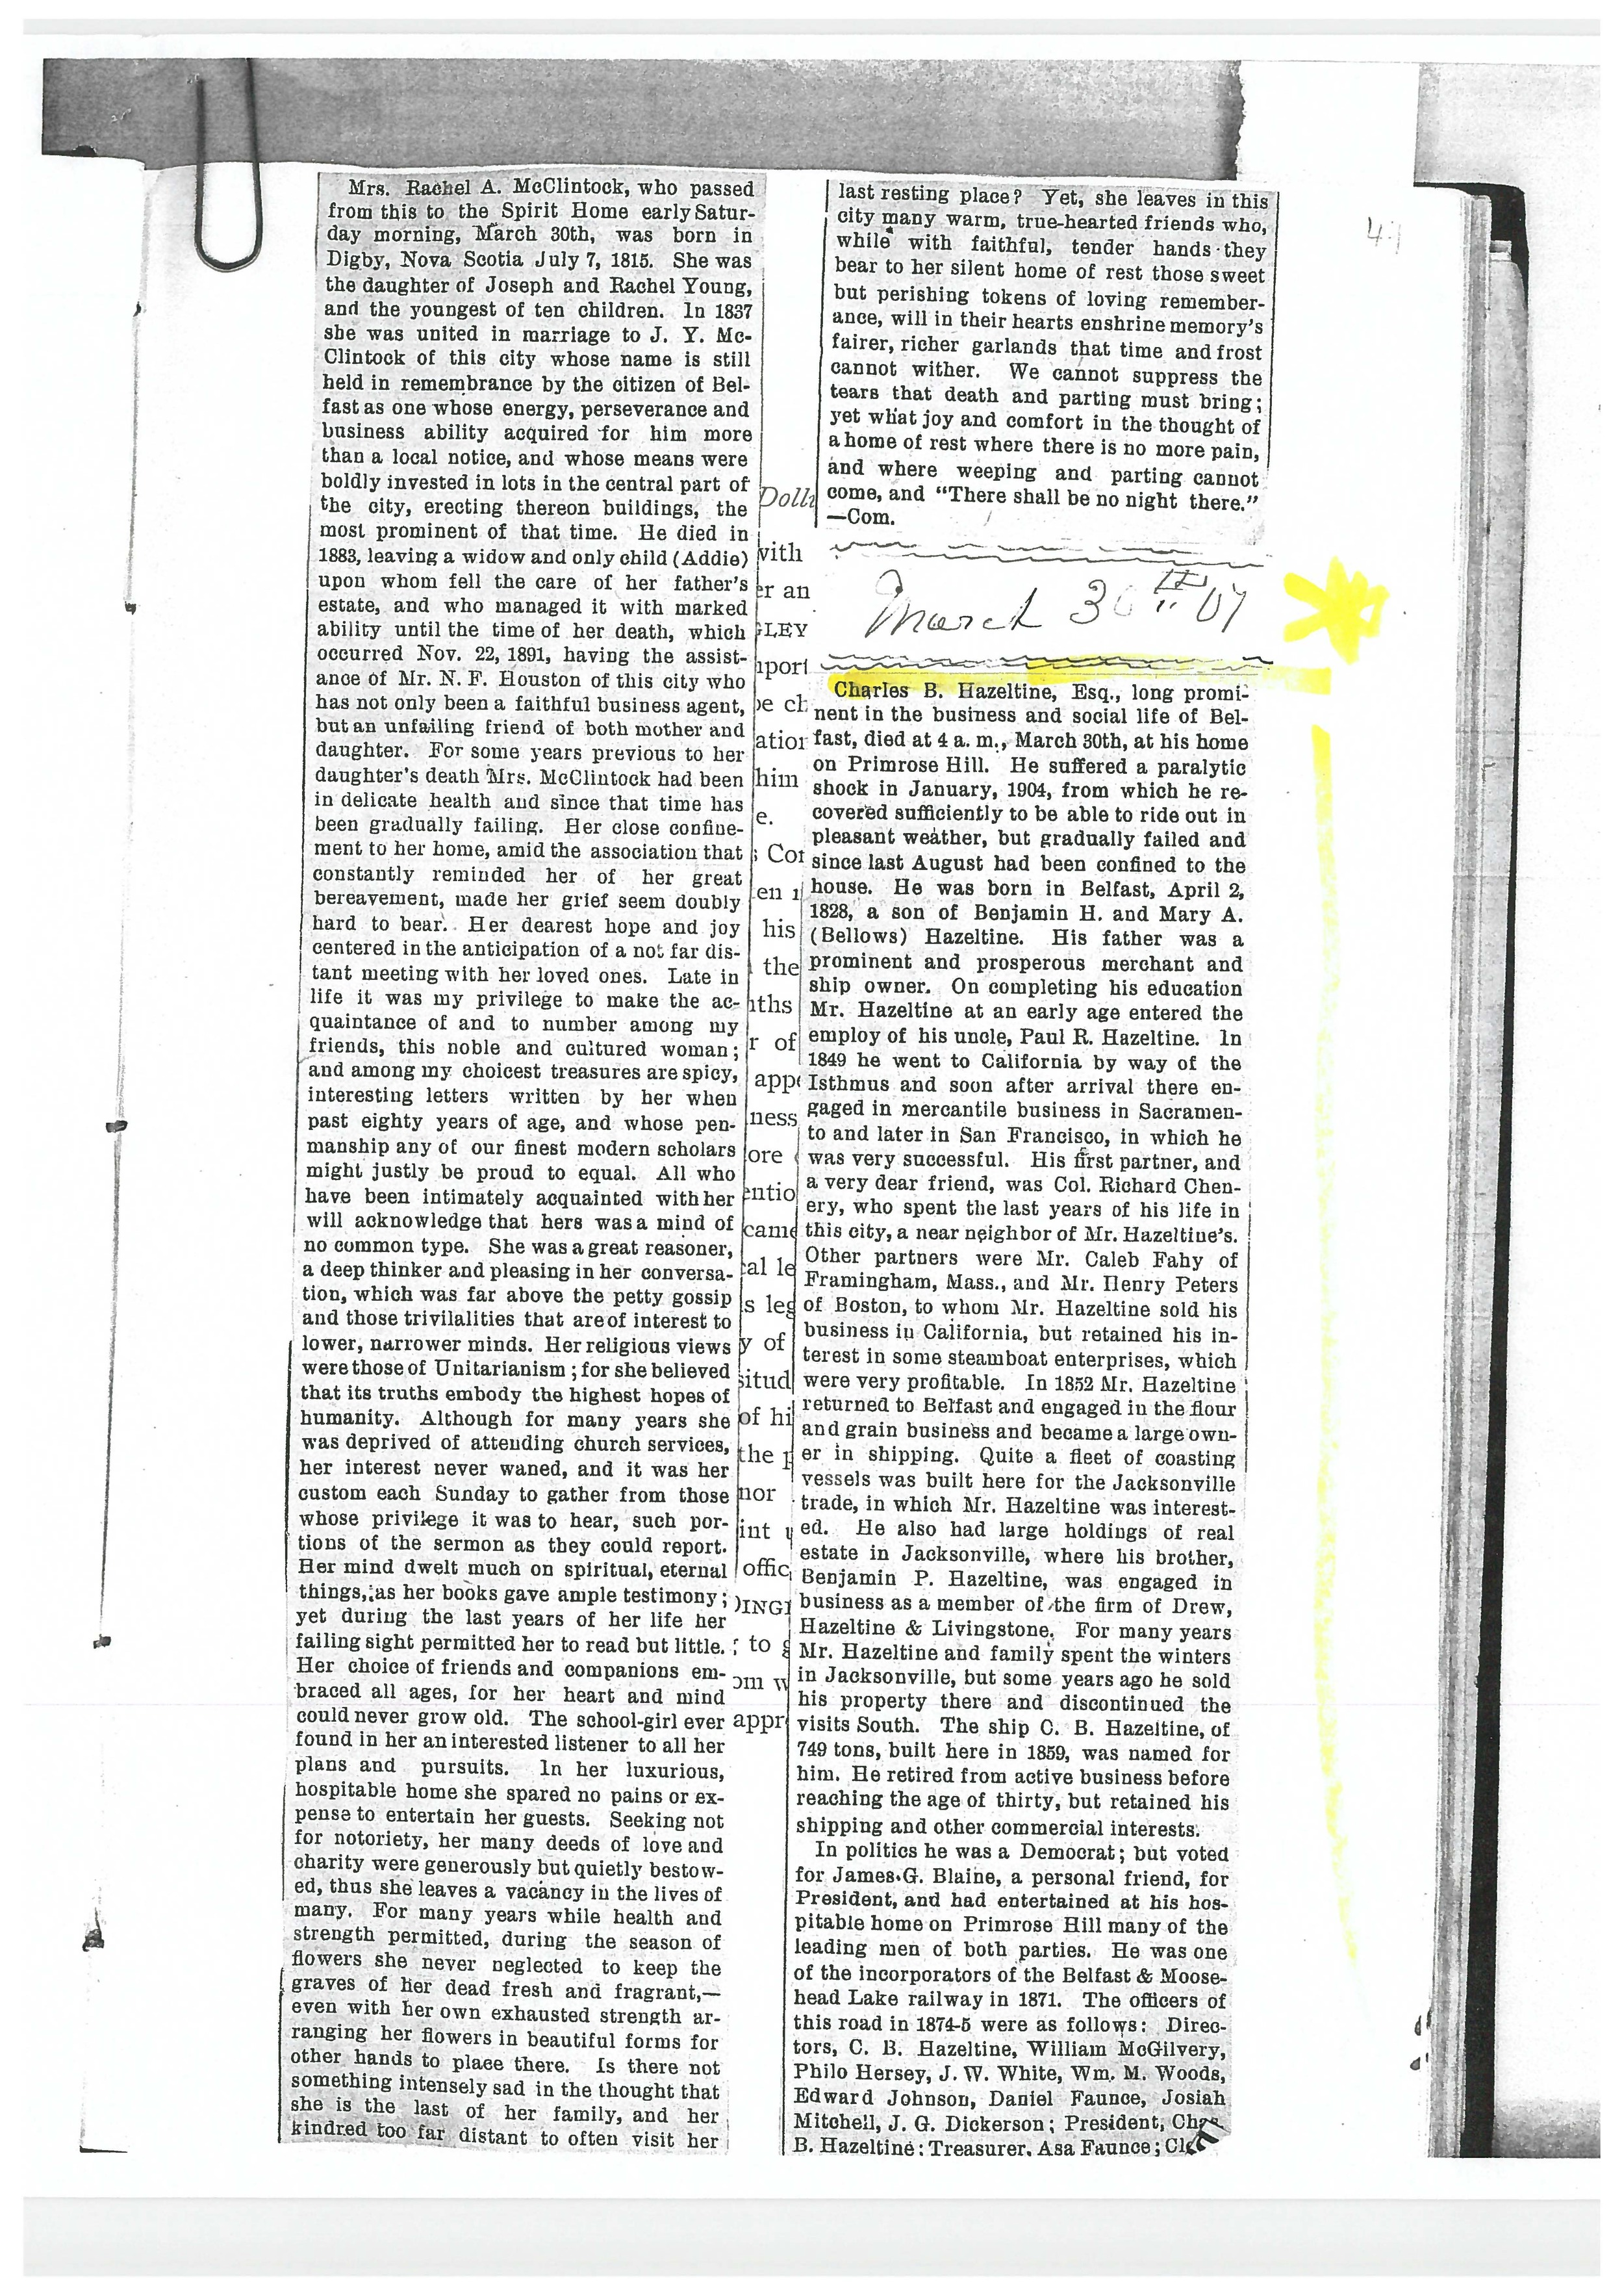 The obituary of Charles, 1904.